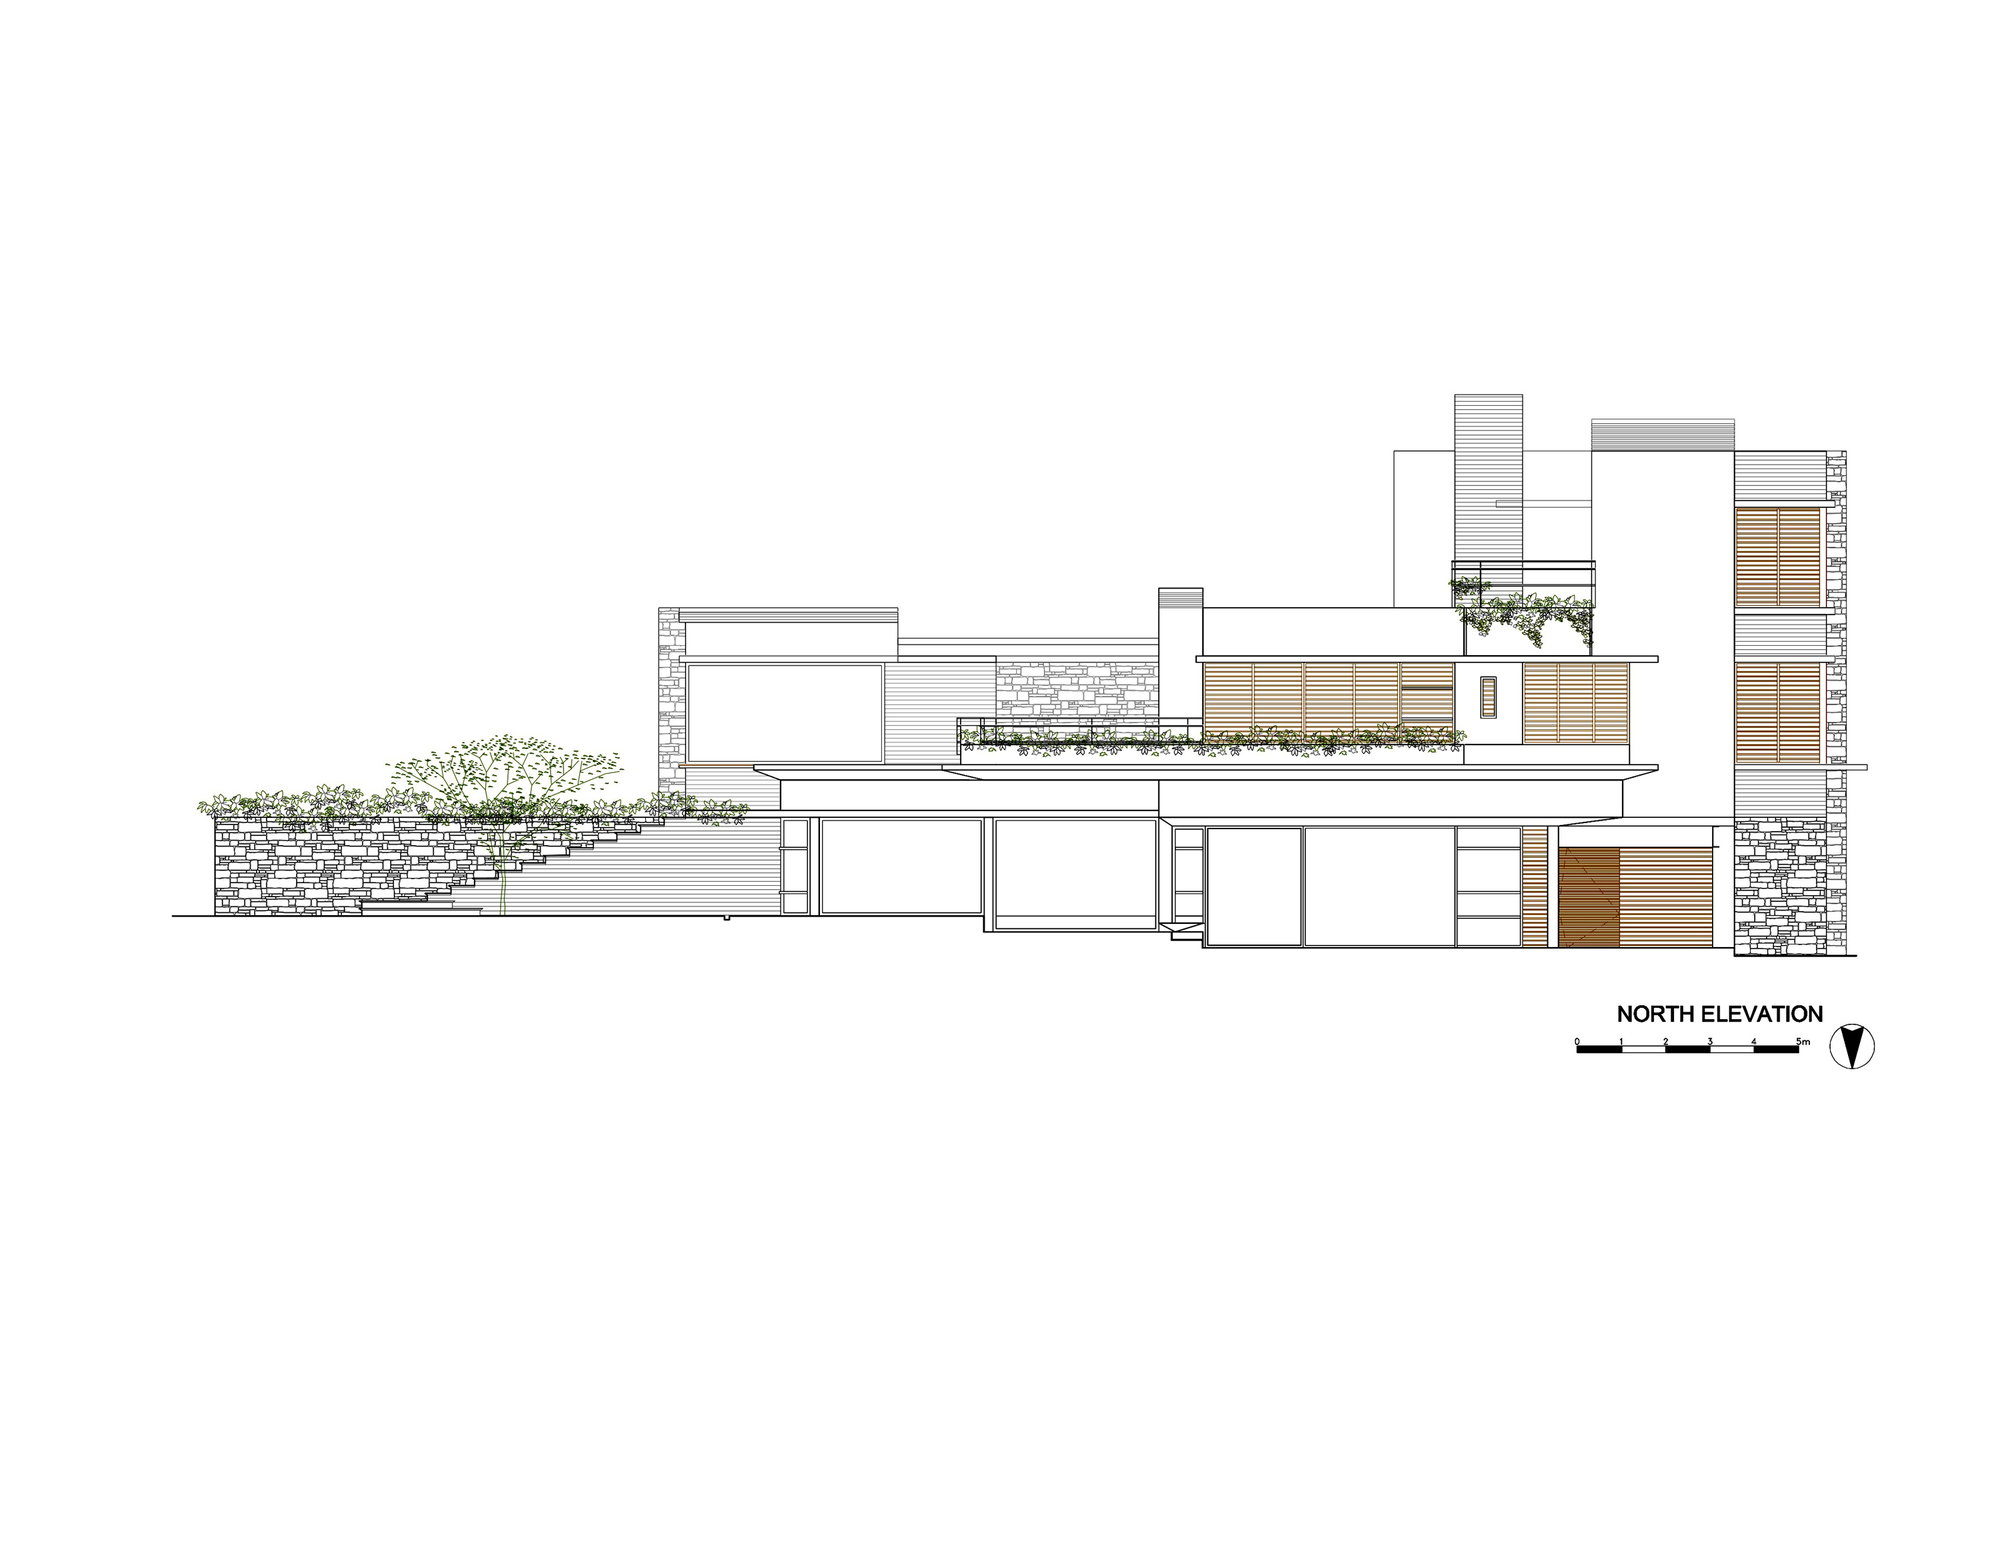 530eba91c07a80ed3b00015b_house-maza-chk-arquitectura_north_elevation